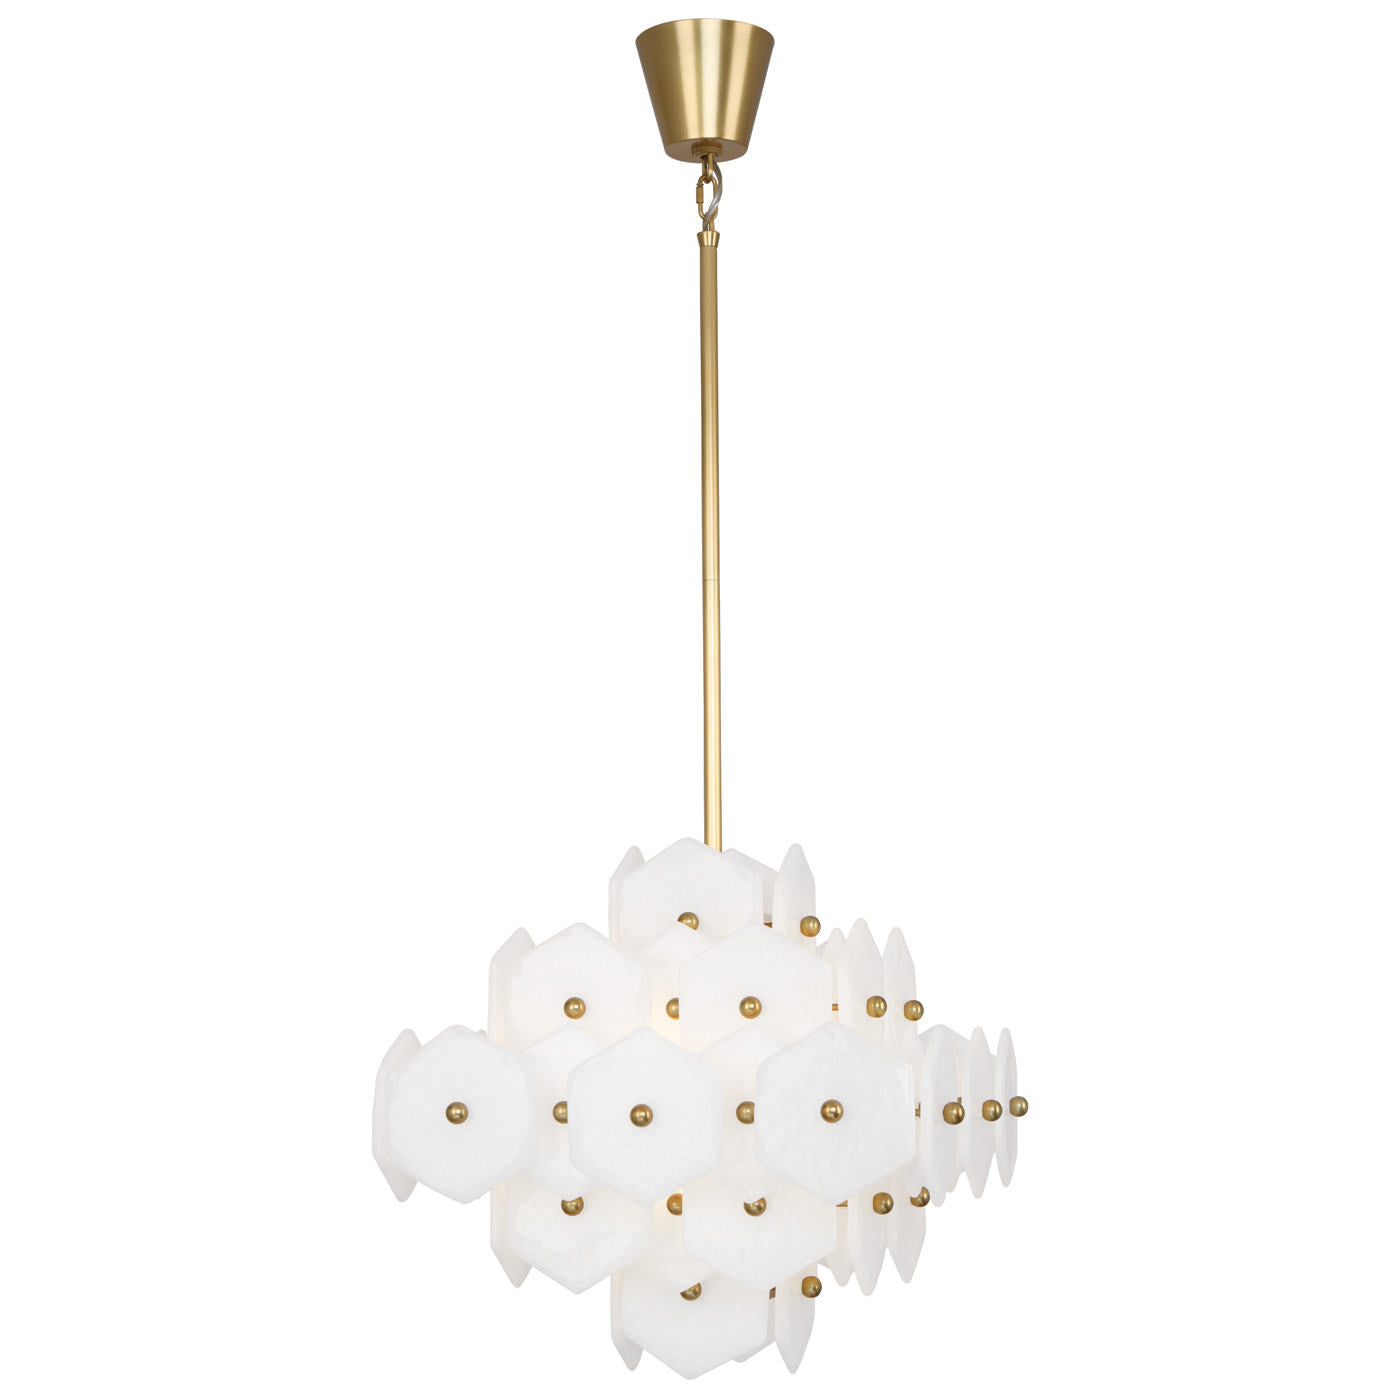 jonathan adler vienna small chandelier lighting brass